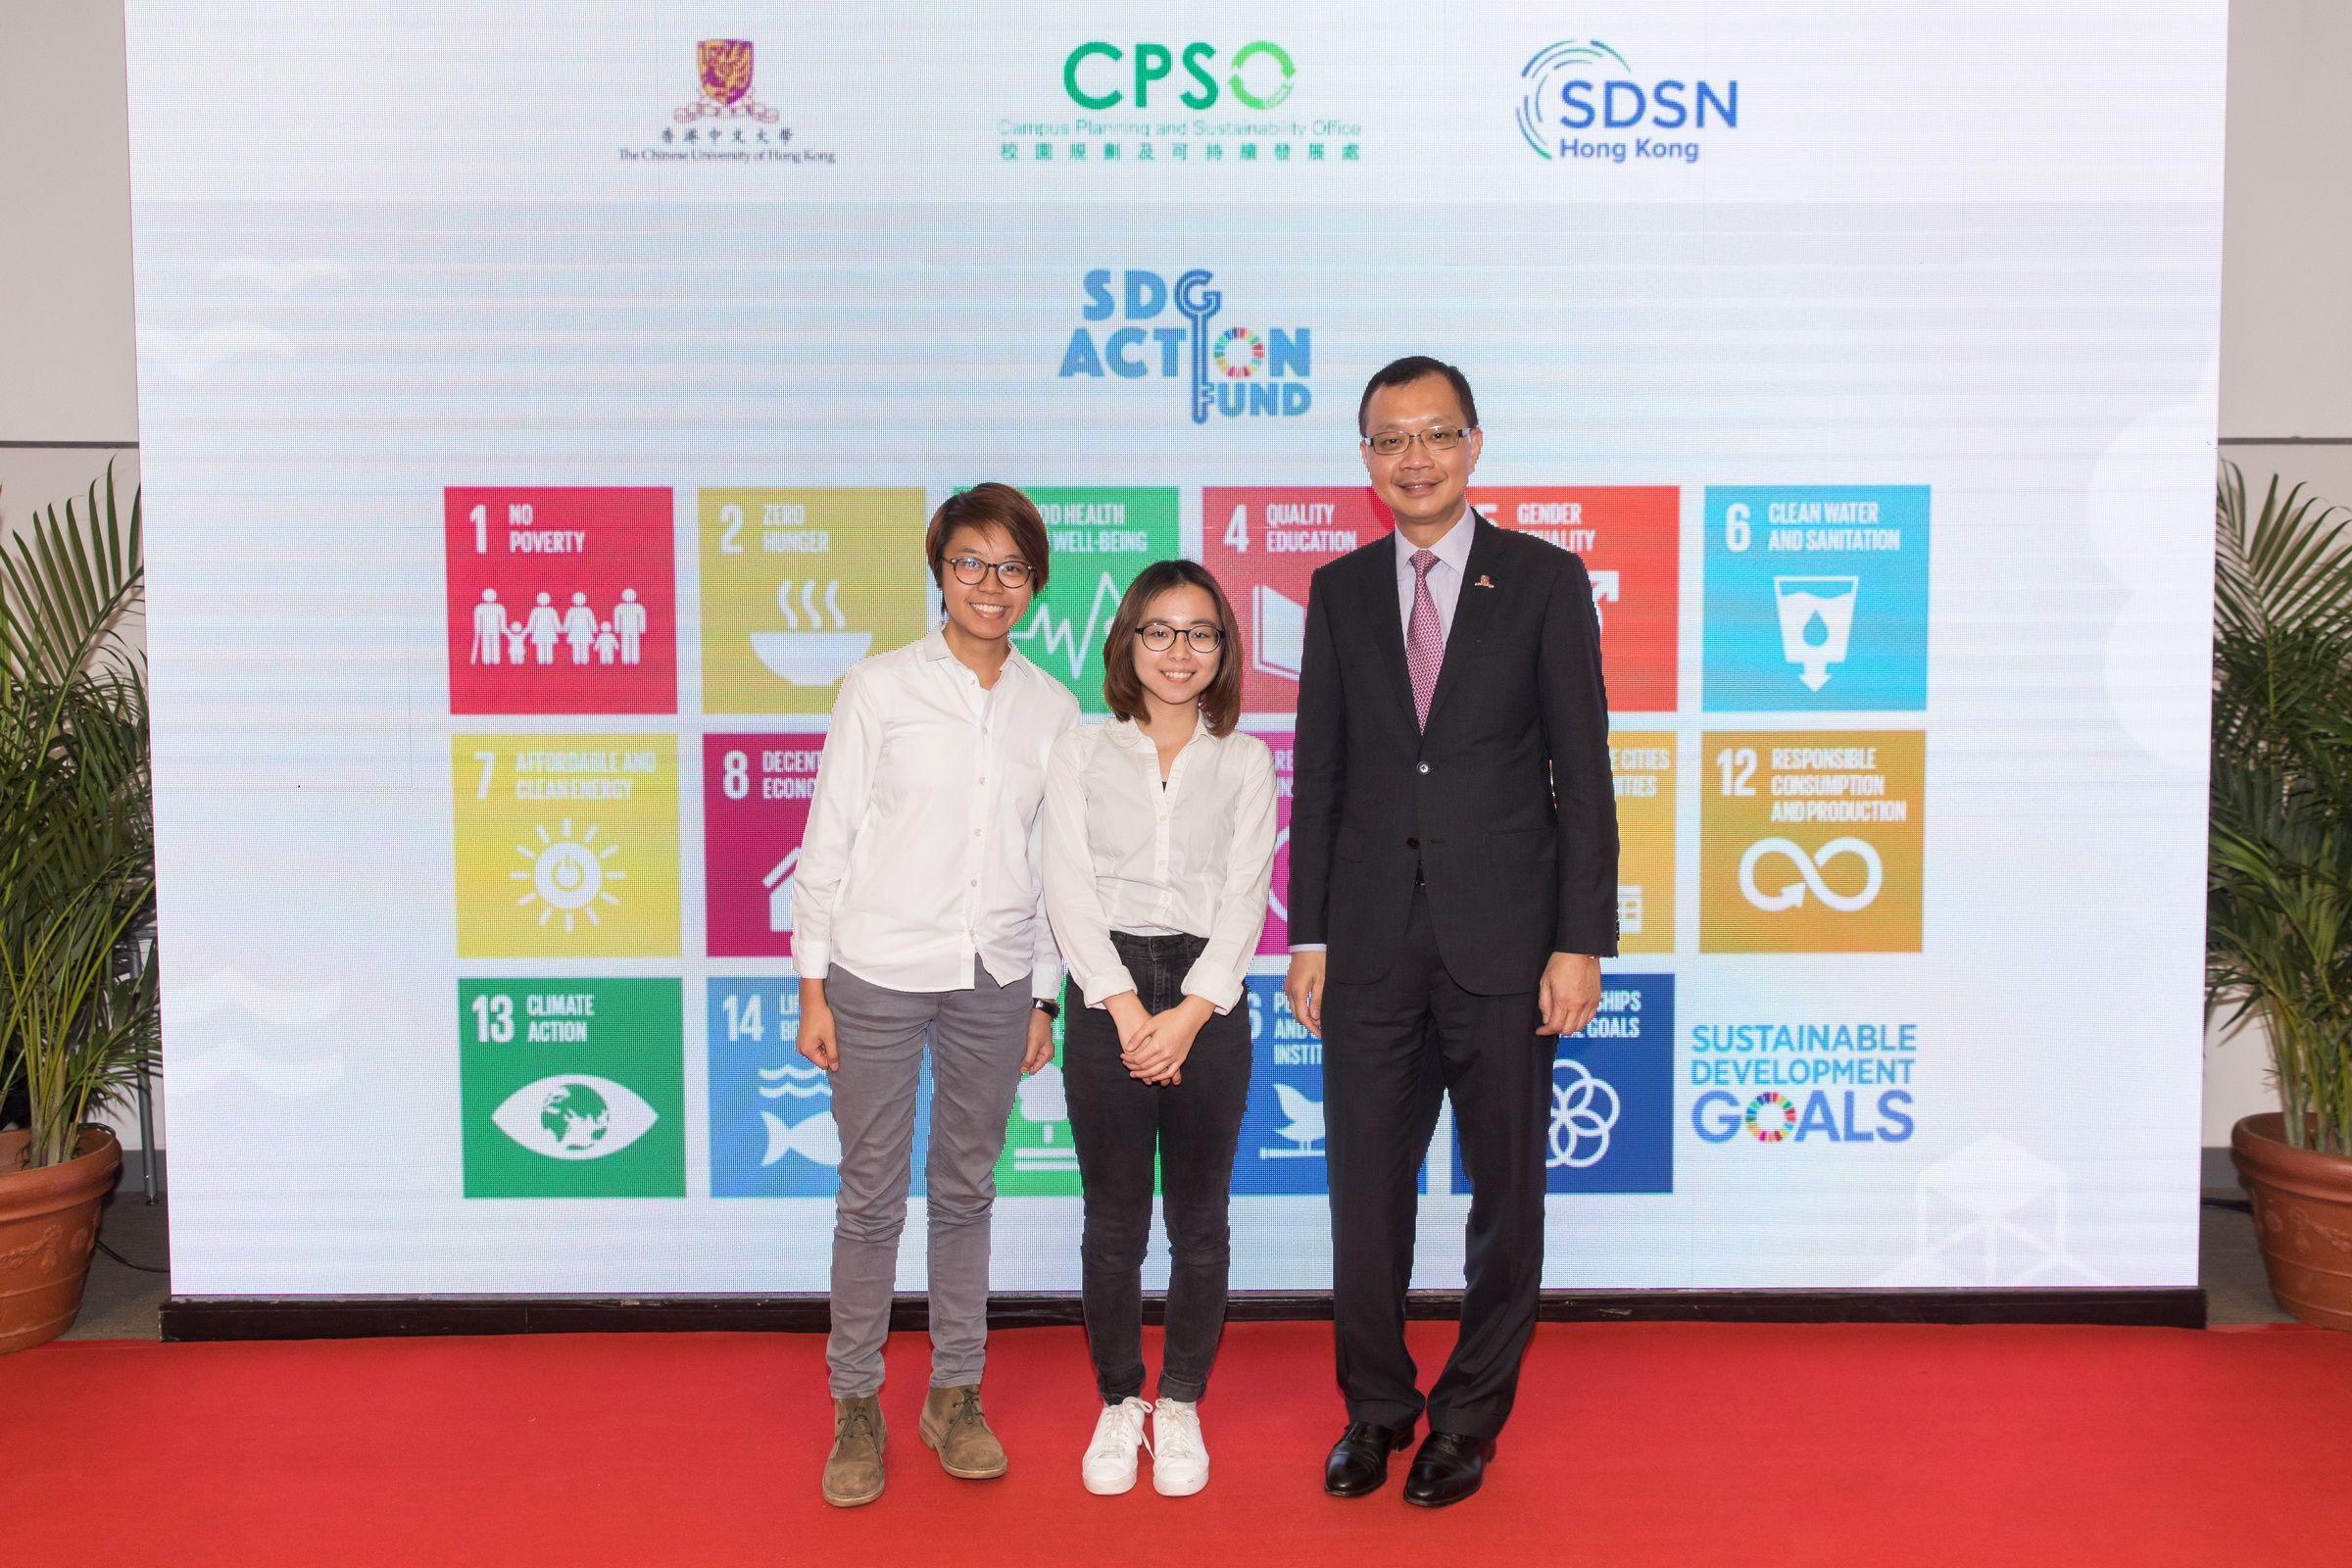 Mr Eric S.P. Ng, Vice-President and Chairman of the Committee on Campus Sustainability of CUHK (right) and the student representatives of one of the pilot projects supported by the SDG Action Fund